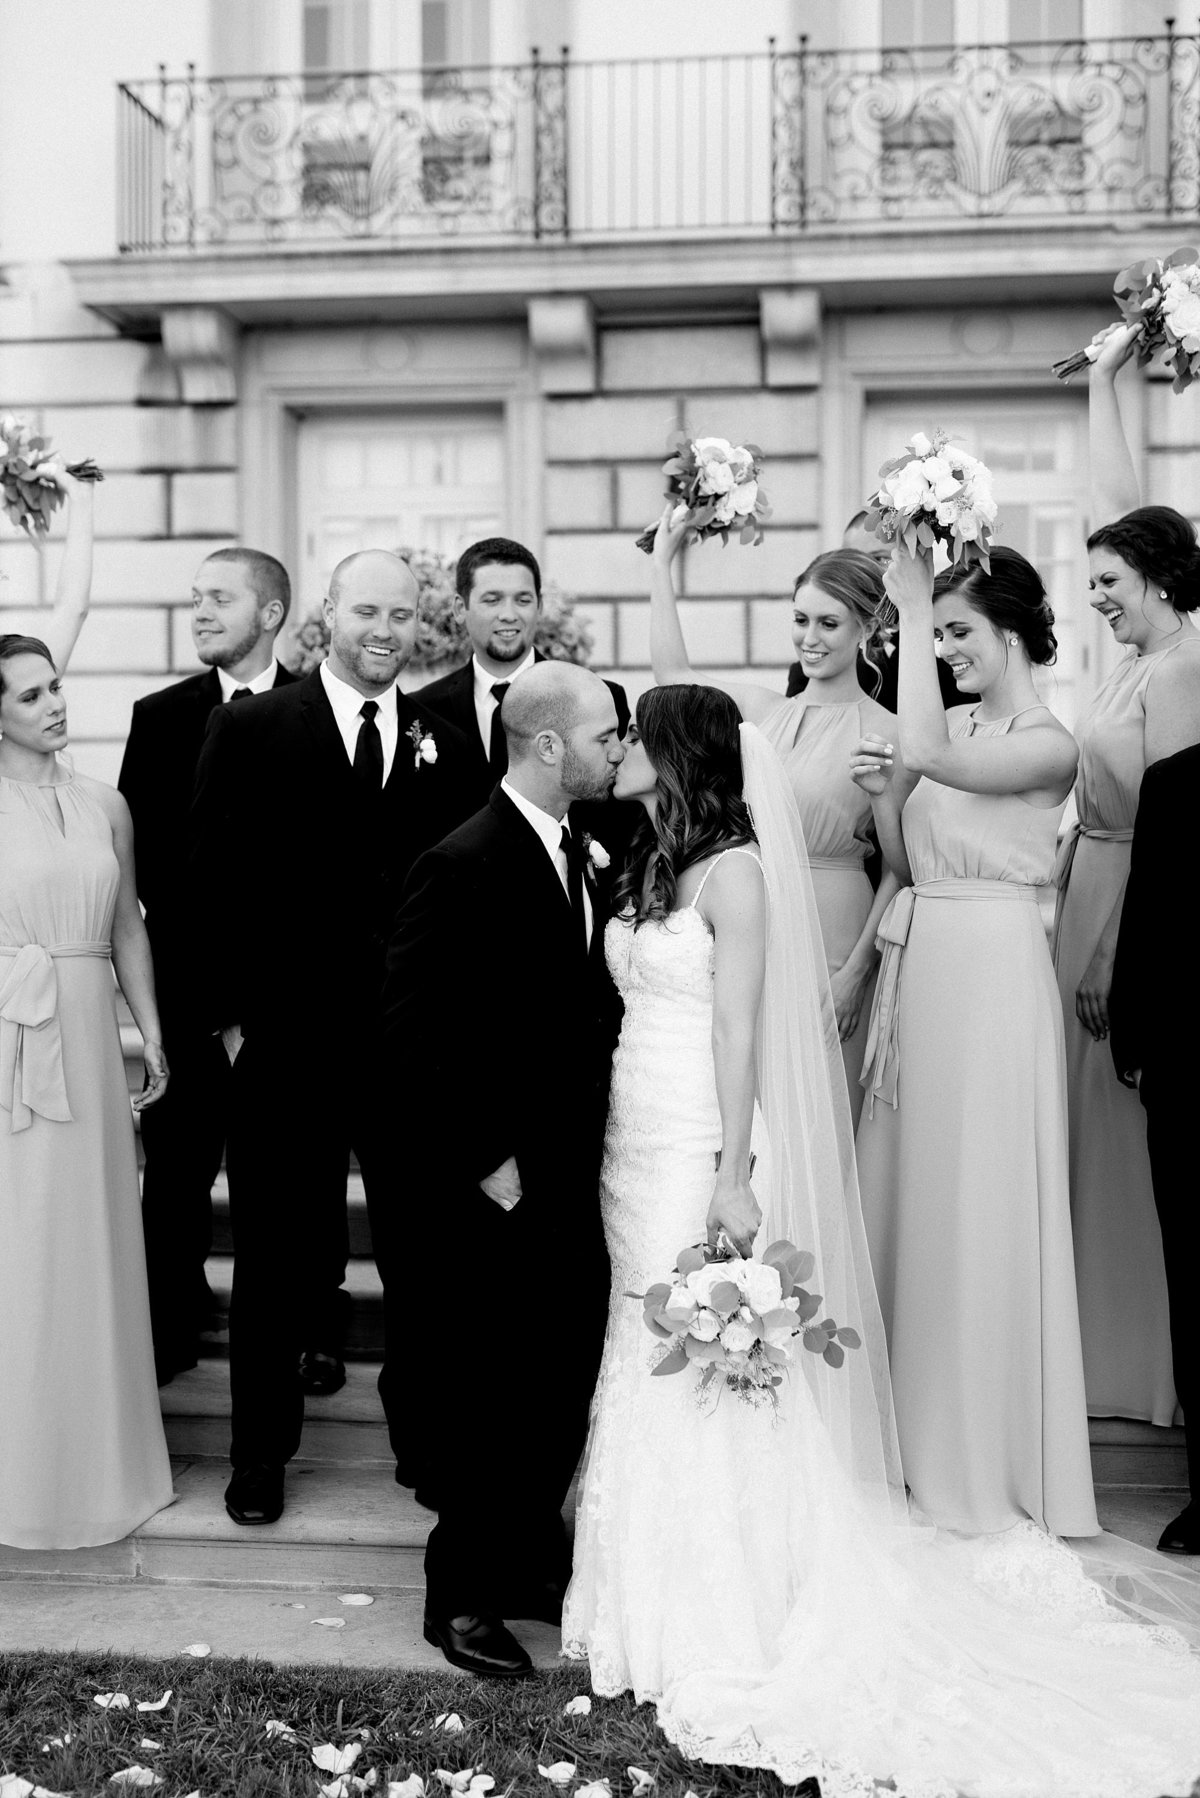 Shuster-Wedding-Grosse-Pointe-War-Memorial-Breanne-Rochelle-Photography101